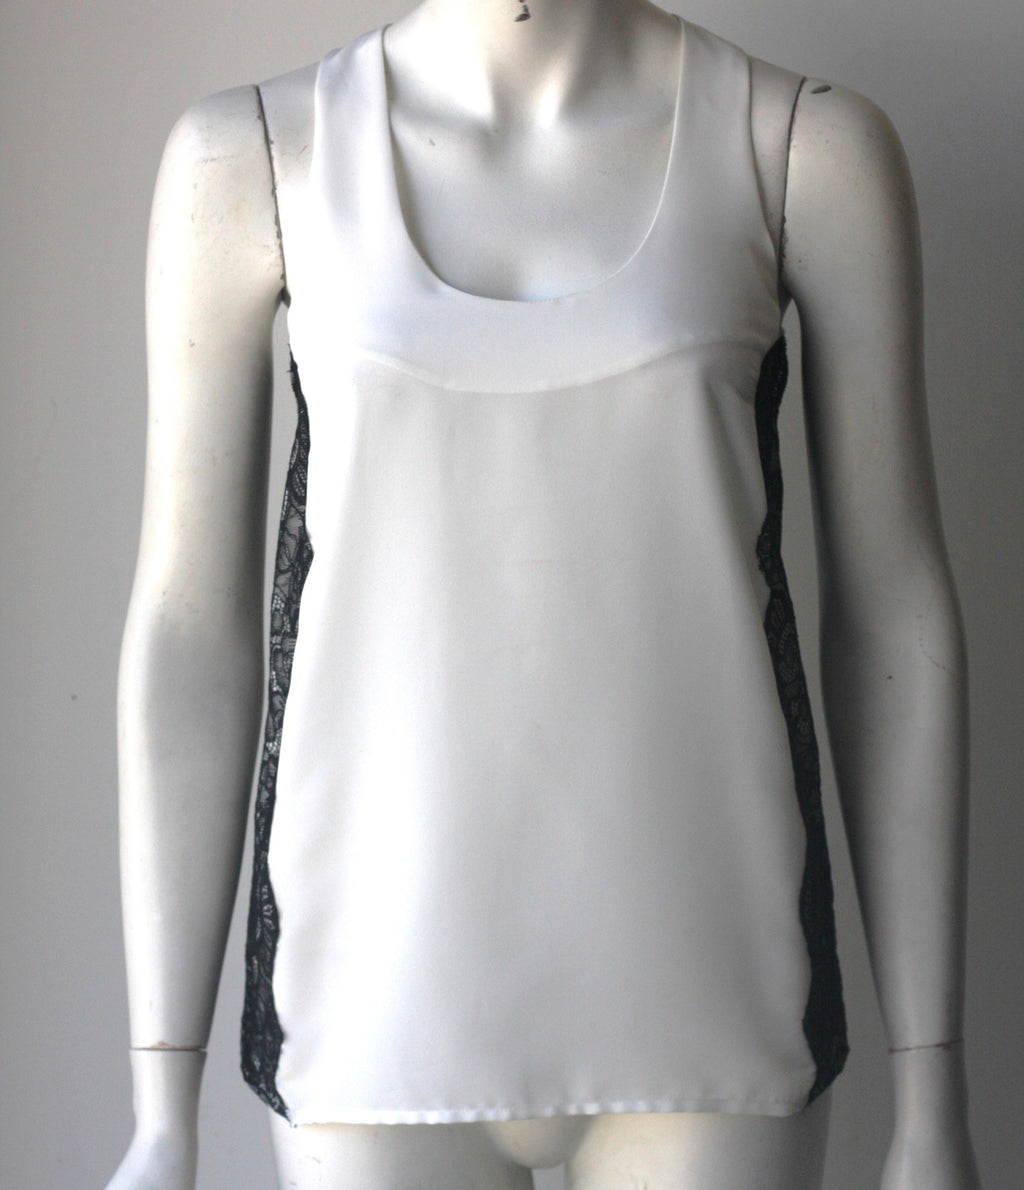 Central Park White & Black Sleeveless Blouse - Joyce's Closet  - 1